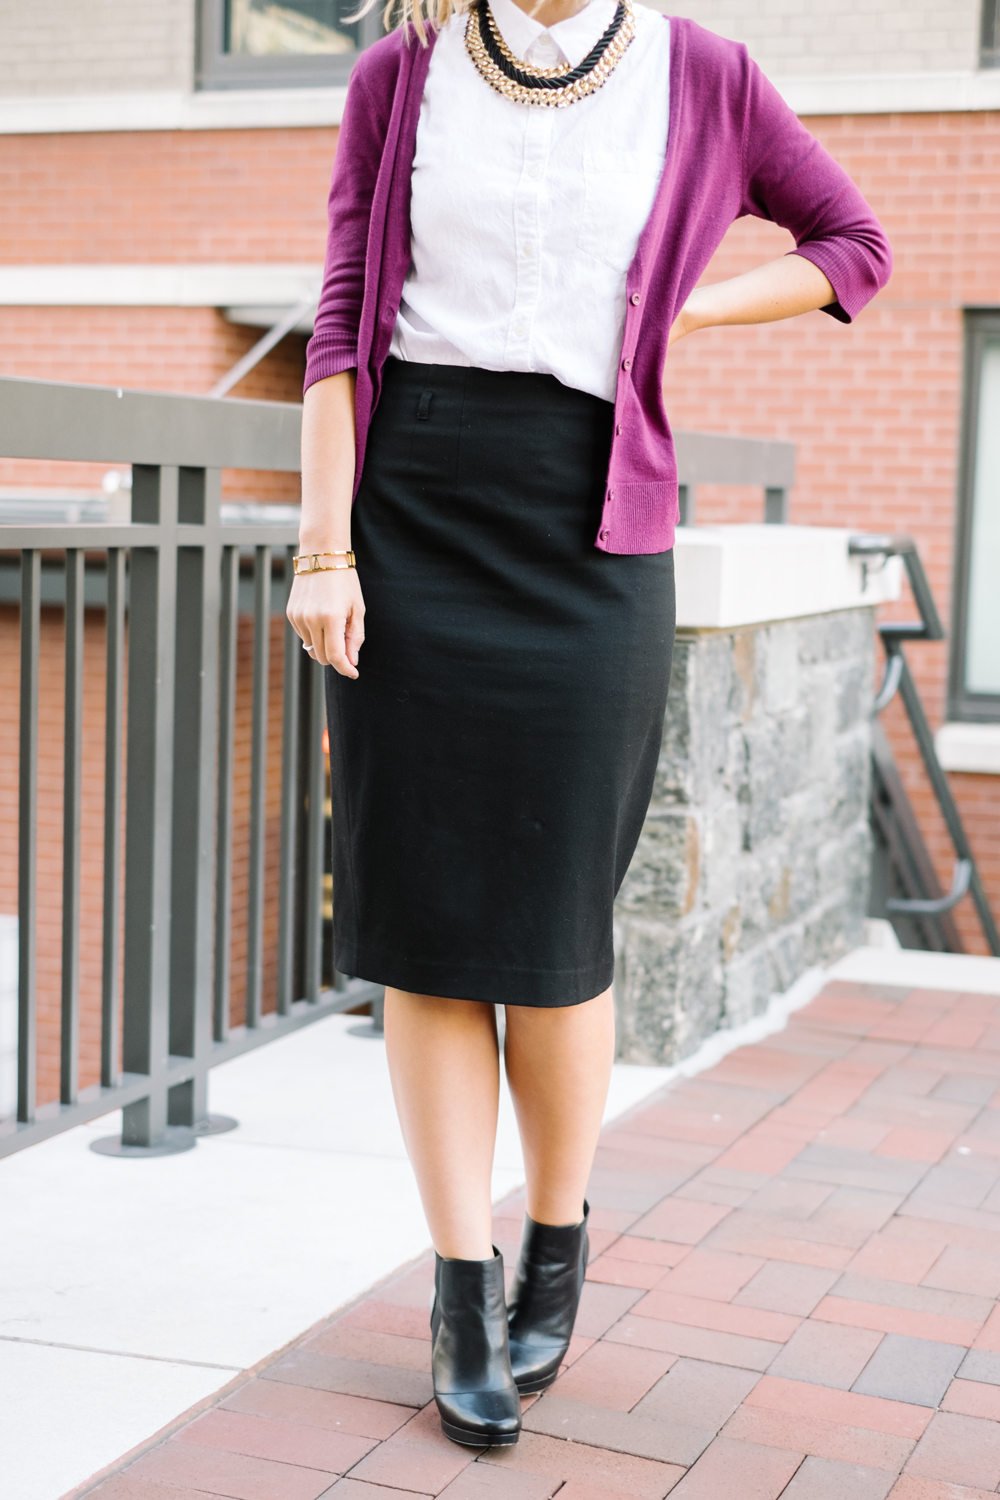 Midi skirt + bold cardigan + boots + statement necklace  (see full outfit post here!)